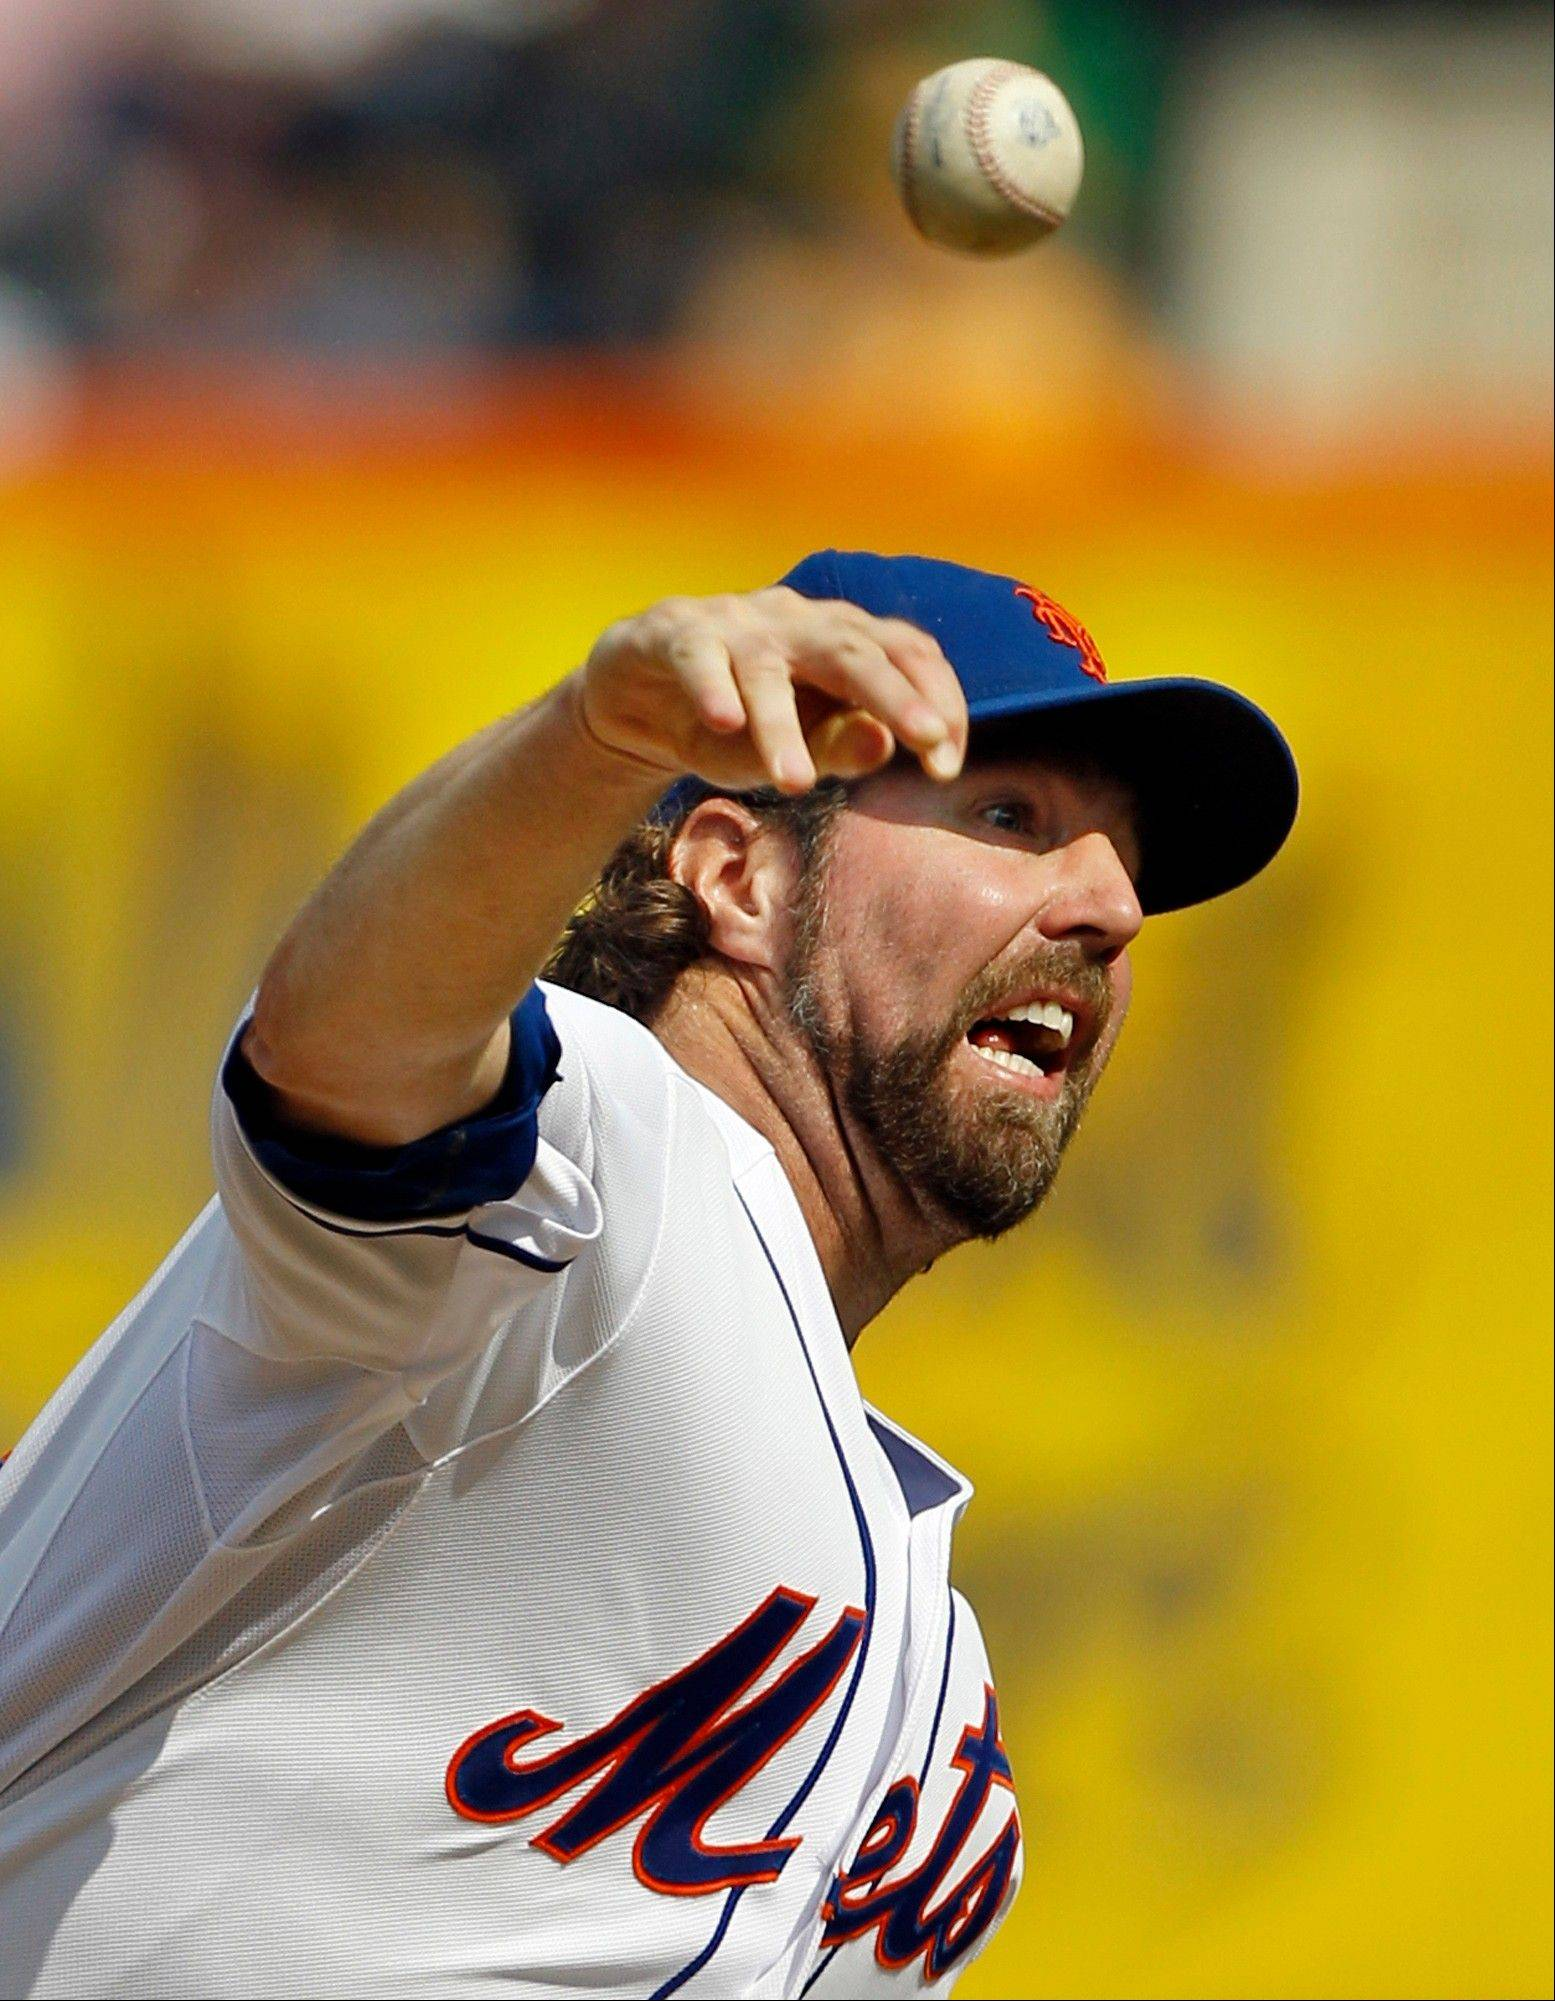 In this Sept. 27, 2012, file photo, New York Mets starting pitcher R.A. Dickey delivers against the Pittsburgh Pirates during the first inning of a baseball game at Citi Field in New York. Dickey and Mets general manager Sandy Alderson can agree on one thing _ they would prefer to have closure before opening day. The Cy Young Award winner can become a free agent after the 2013 season and says he won�t negotiate once it starts, so the Mets probably have to sign him to an extension or trade him to get the best return.